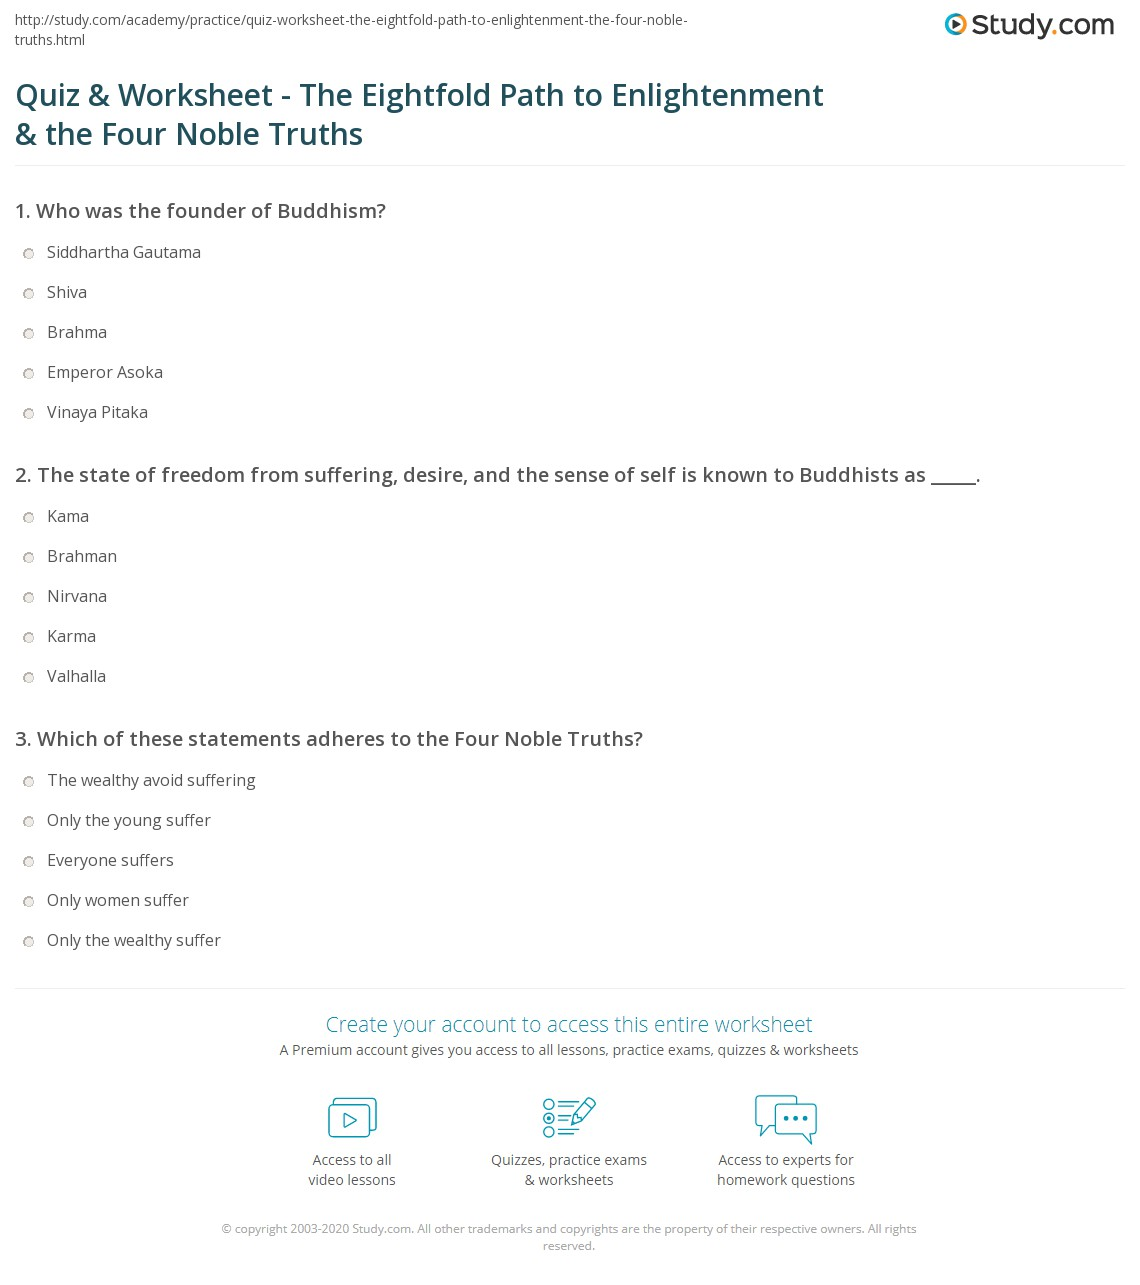 Quiz & Worksheet - The Eightfold Path to Enlightenment & the Four ...